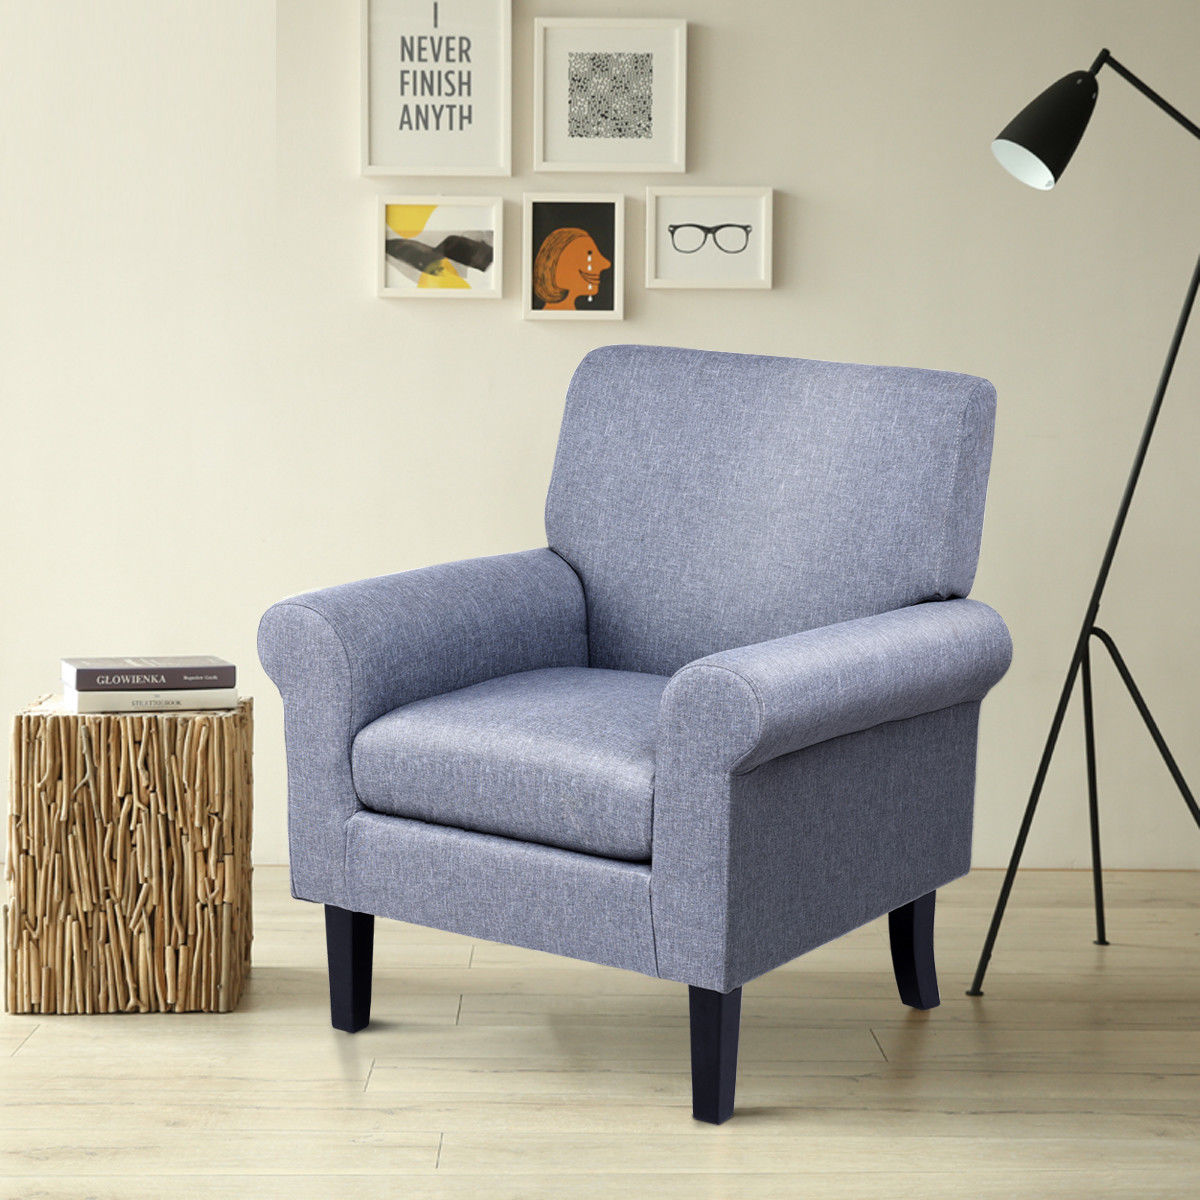 Gymax Fabirc Club Chair Accent Arm Chair Upholstered Single Sofa Living Room Furniture